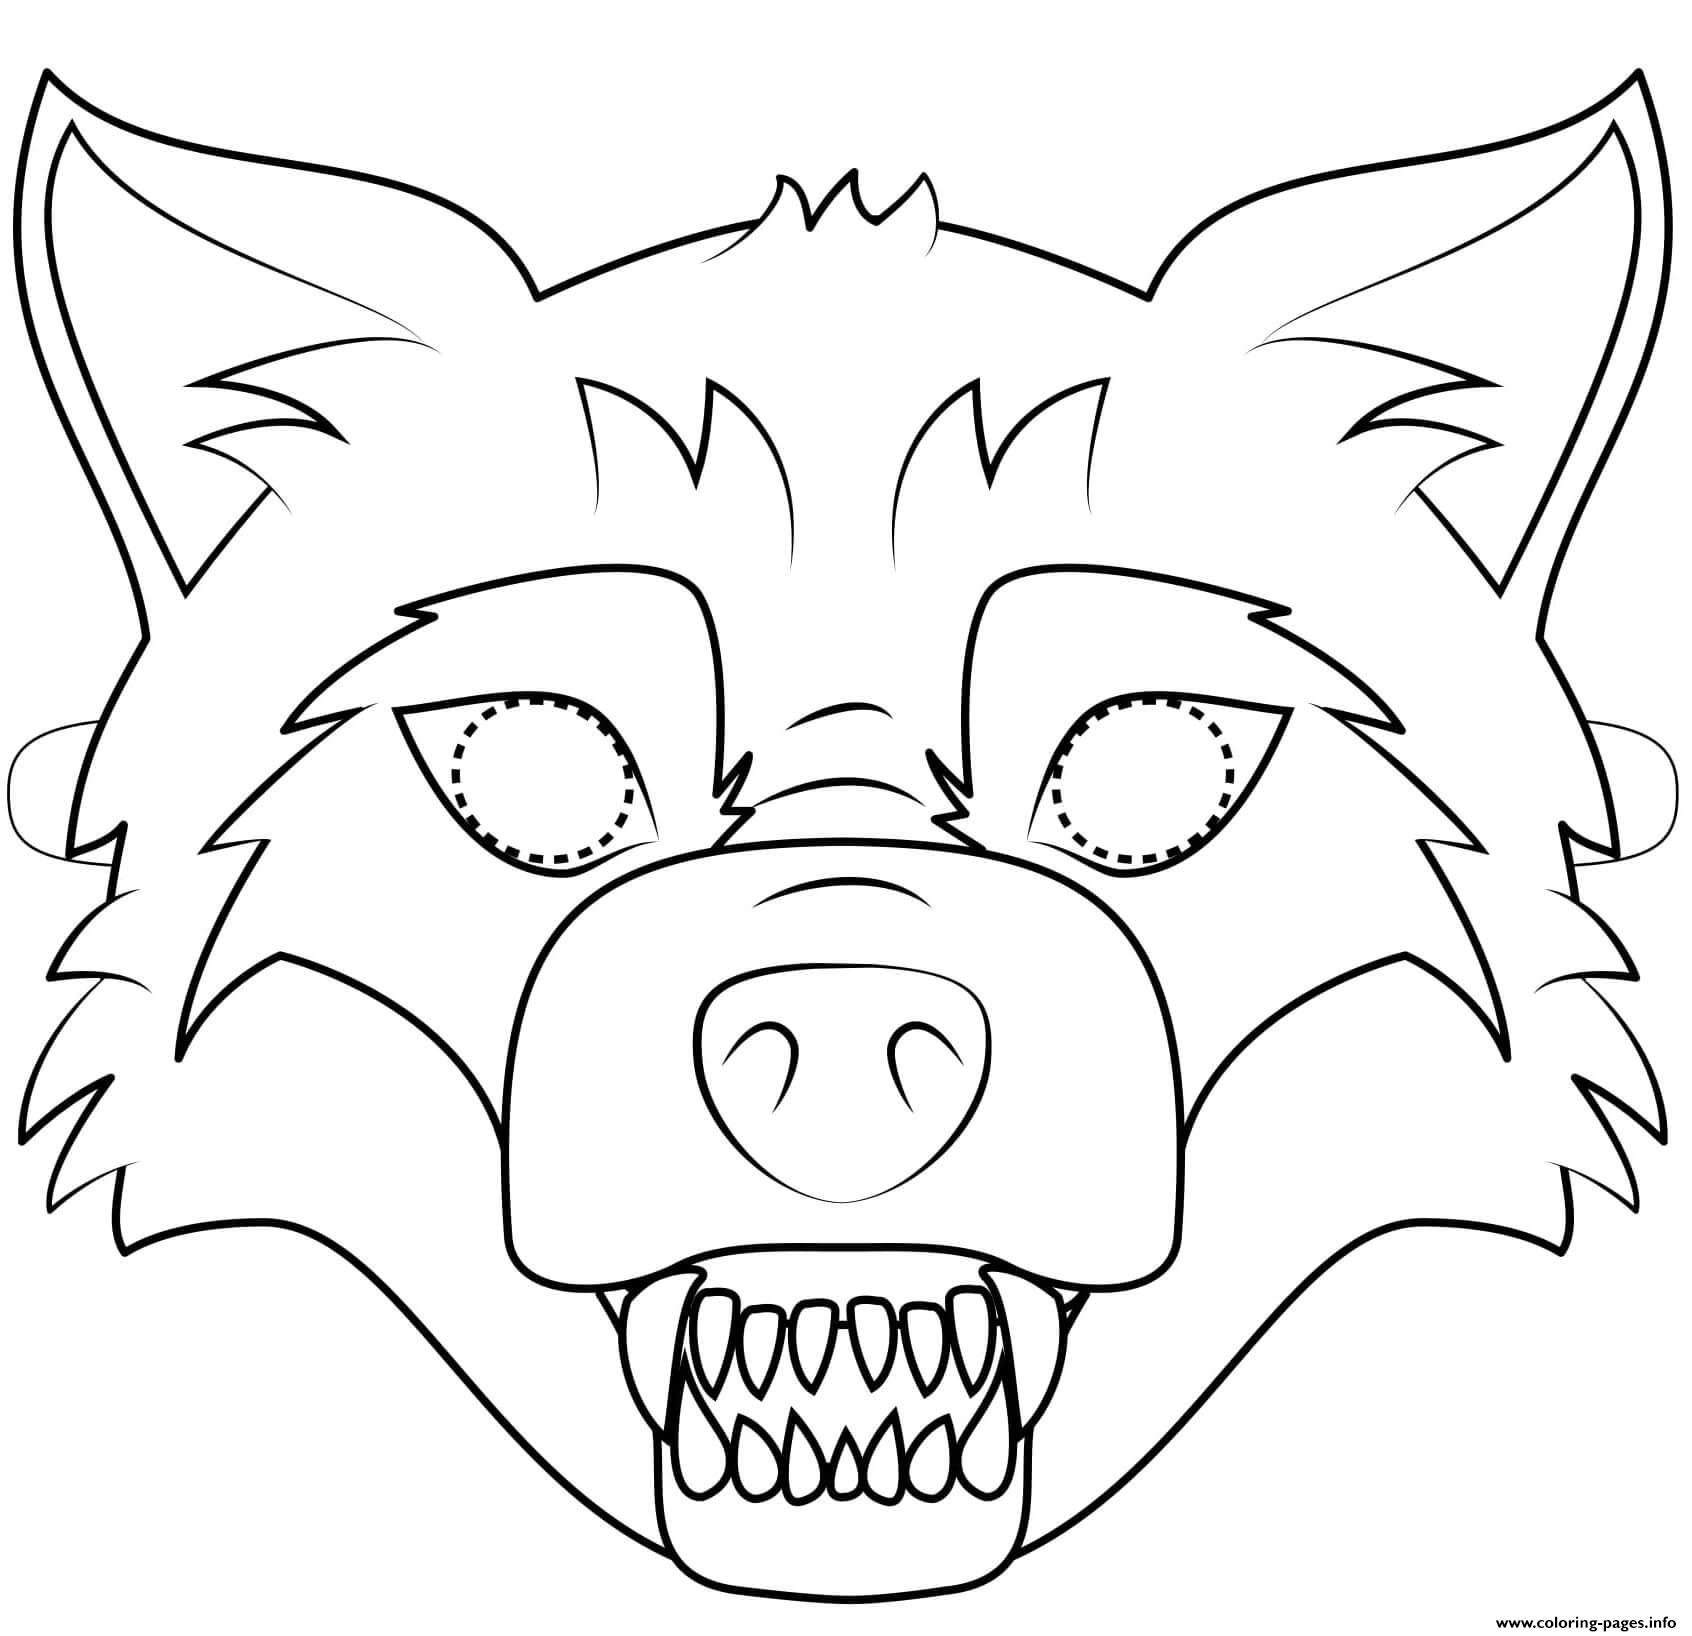 Big Bad Wolf Mask Outline Halloween Coloring Pages Printable